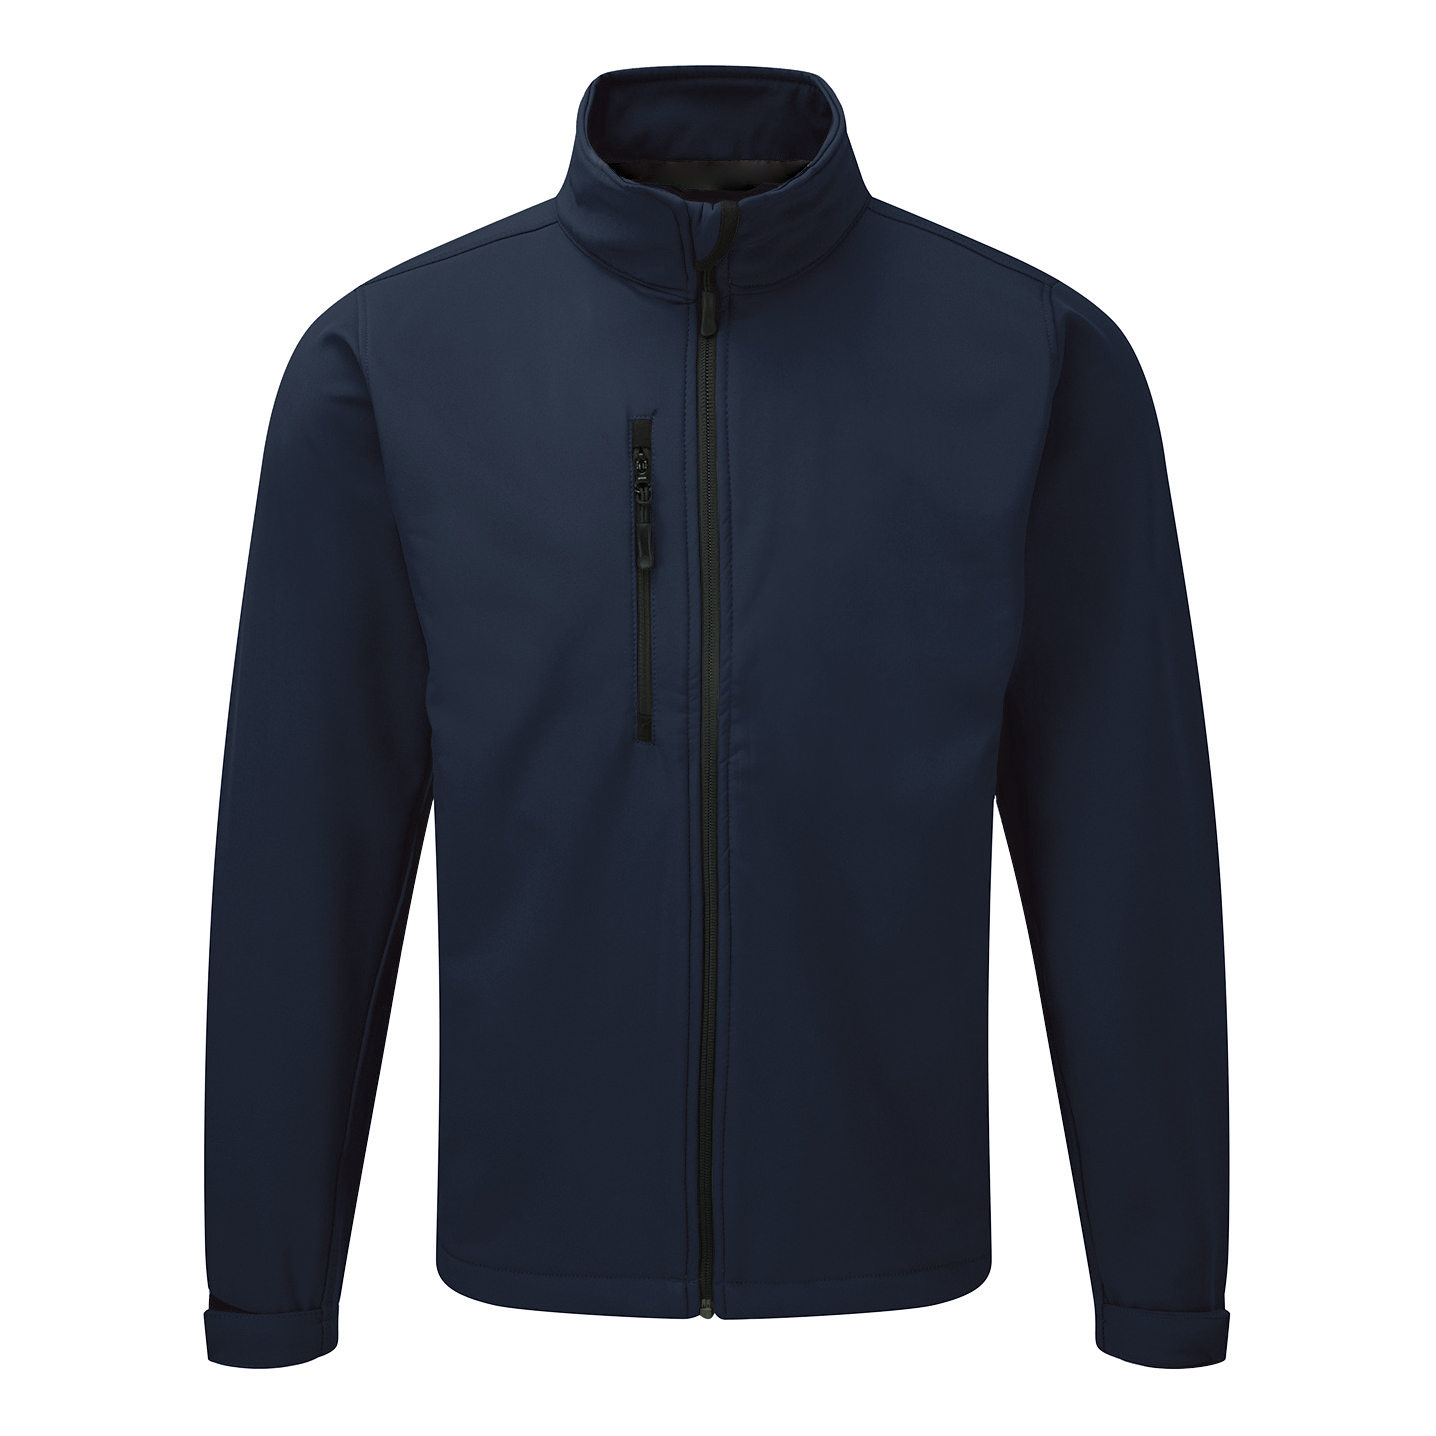 Jacket Soft Shell Water Resistant Breathable 320gsm 4XL Navy Blue